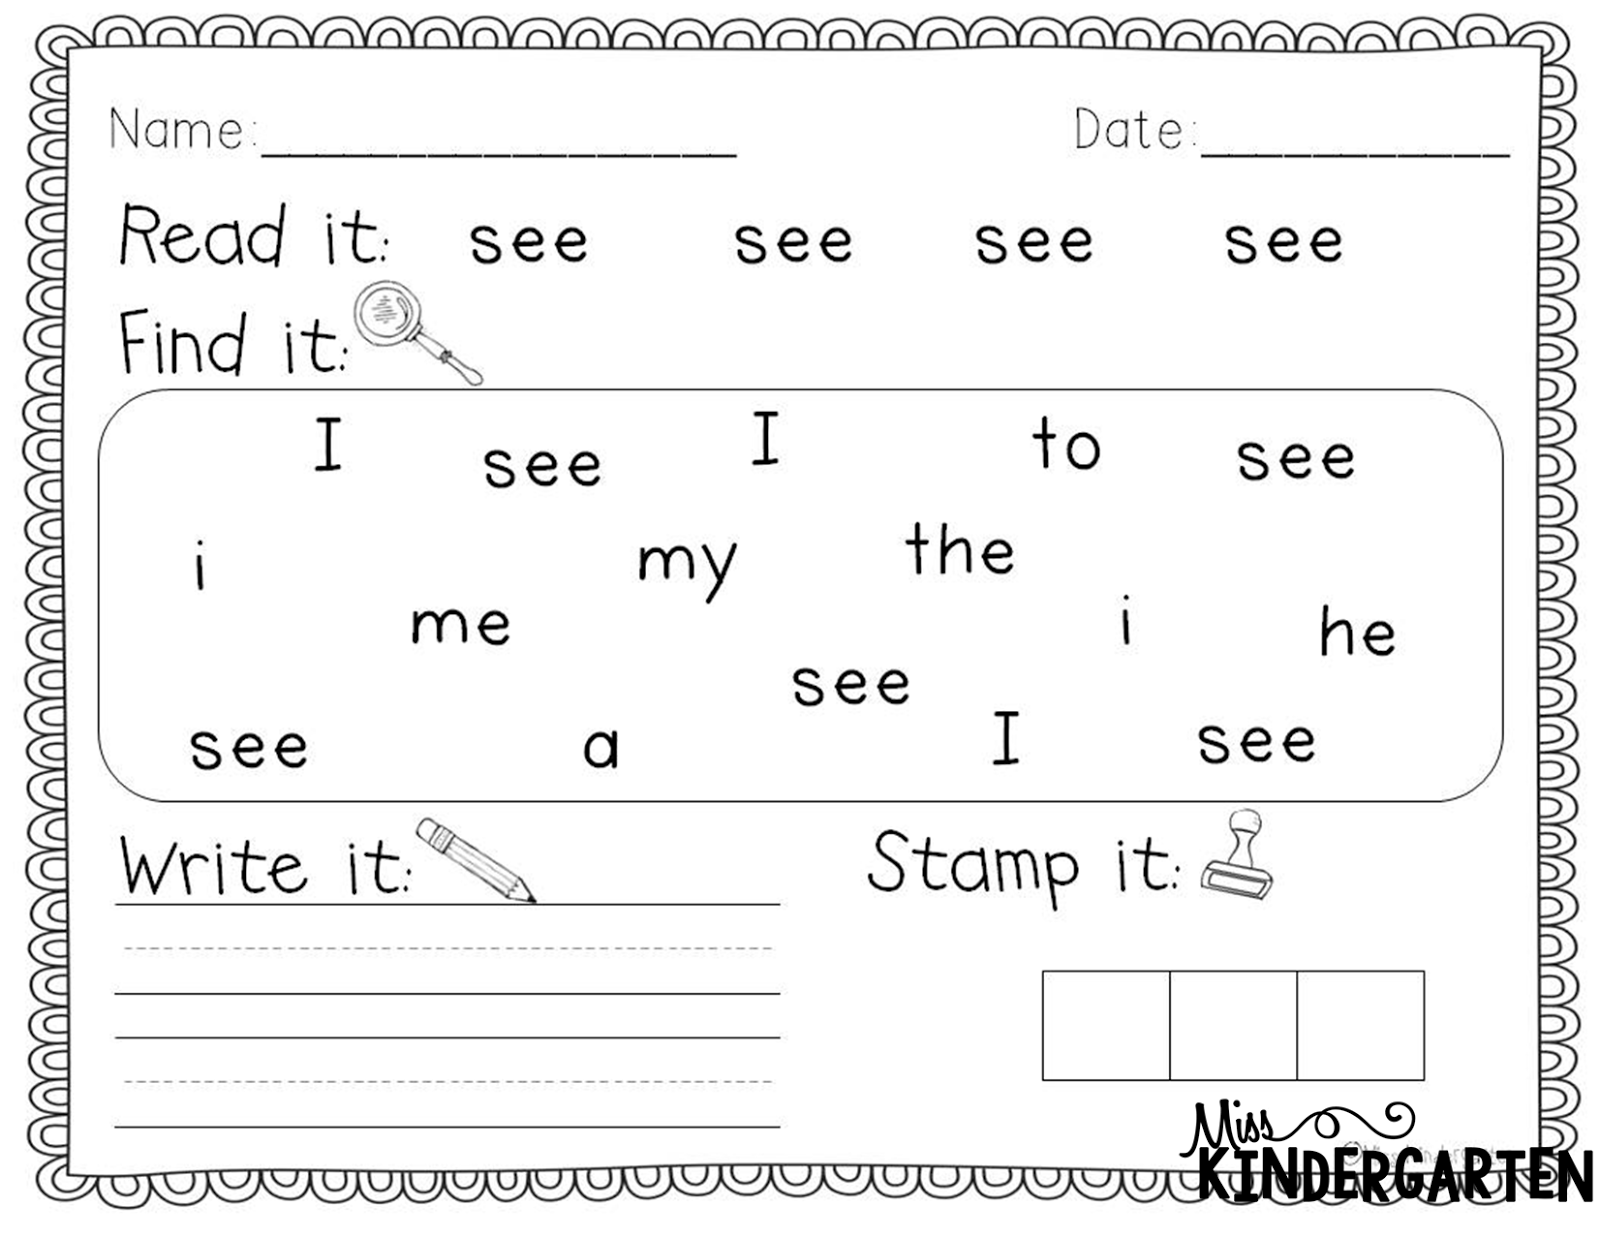 Worksheet 612792 Sight Words Worksheets for Kindergarten – Word Worksheets for Kindergarten